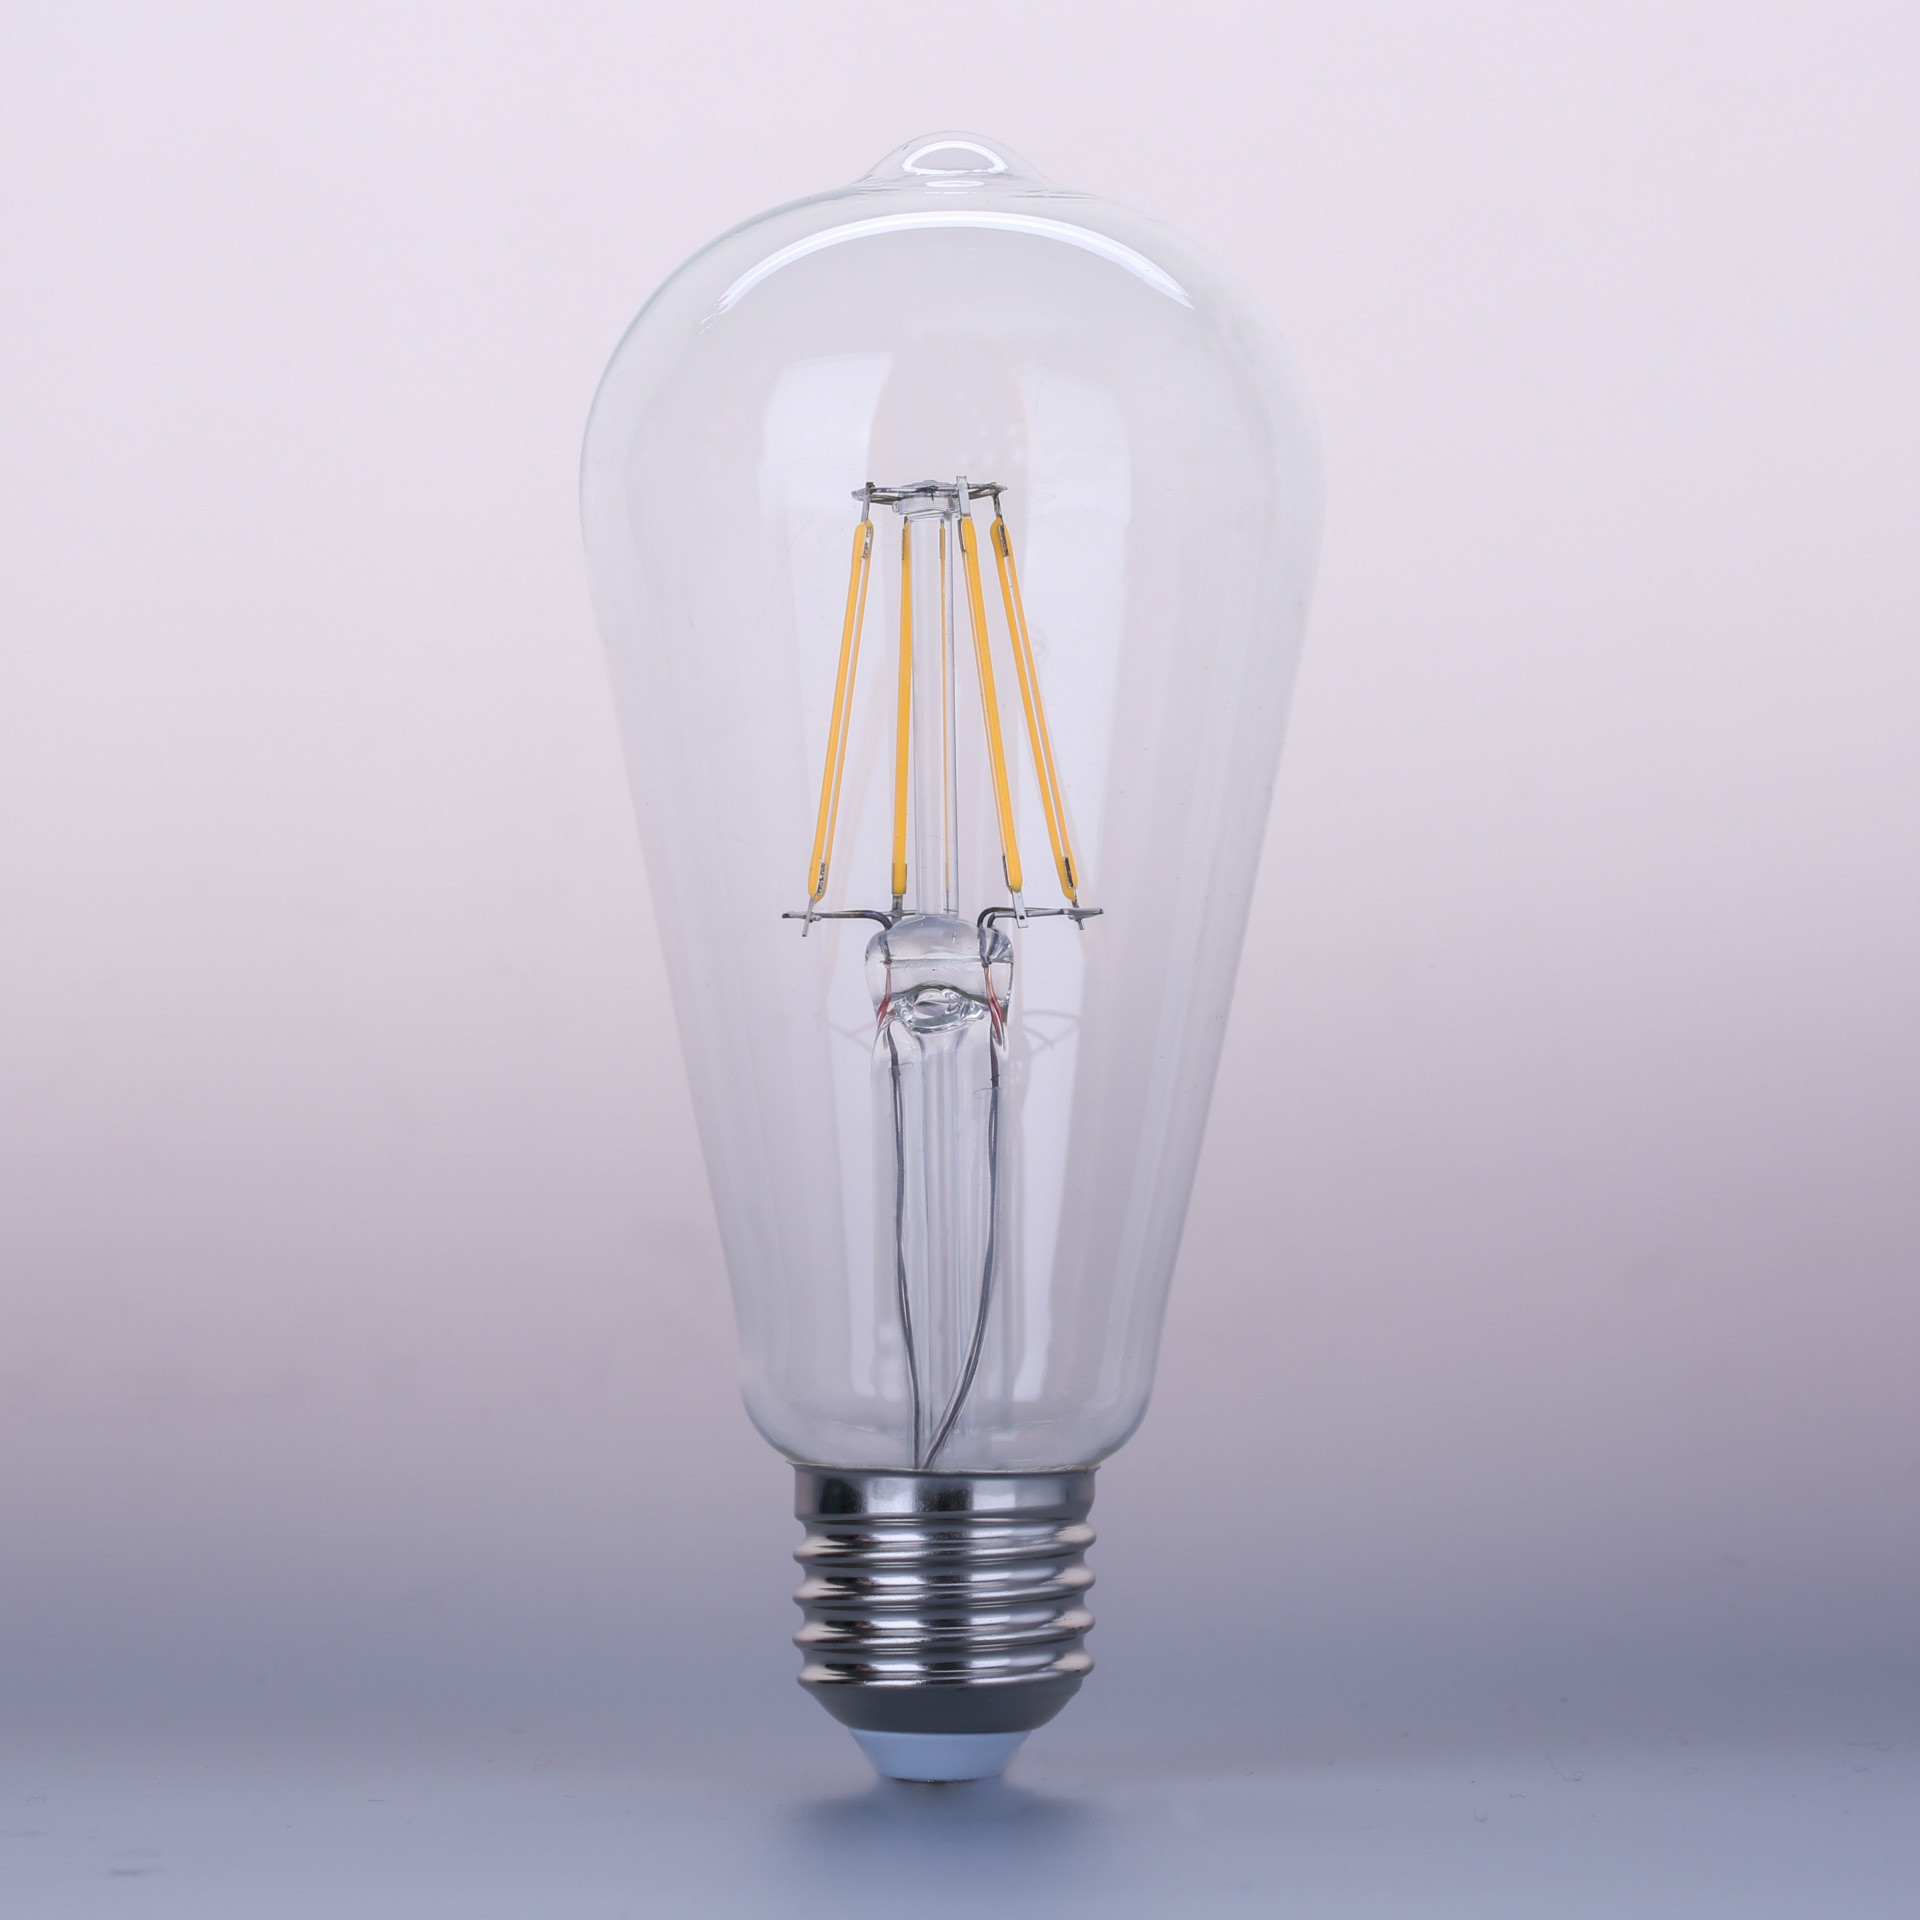 Energy Saving Light St64 E27 6W LED Filament Bulb